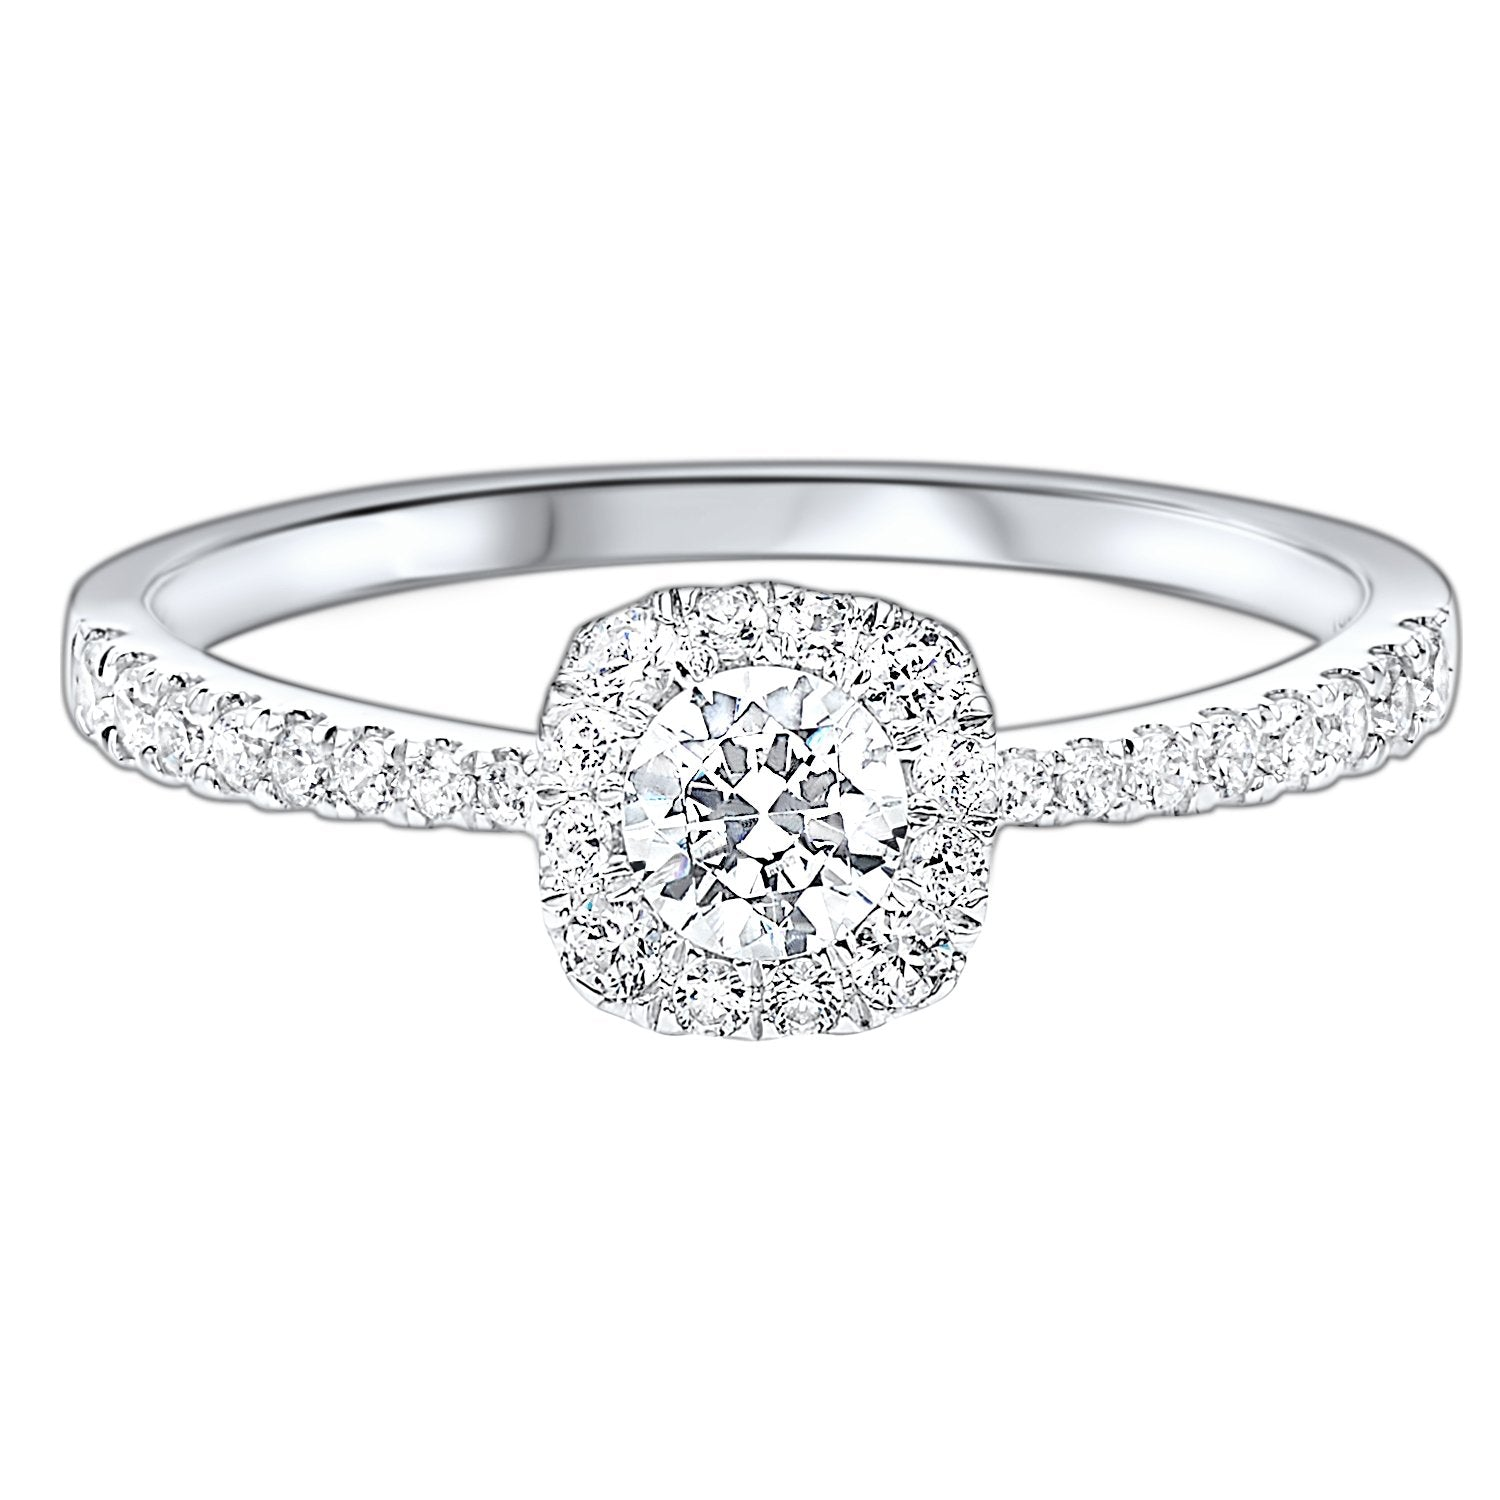 14K Round Diamond Ring with Square Halo -- 1/2 ctw